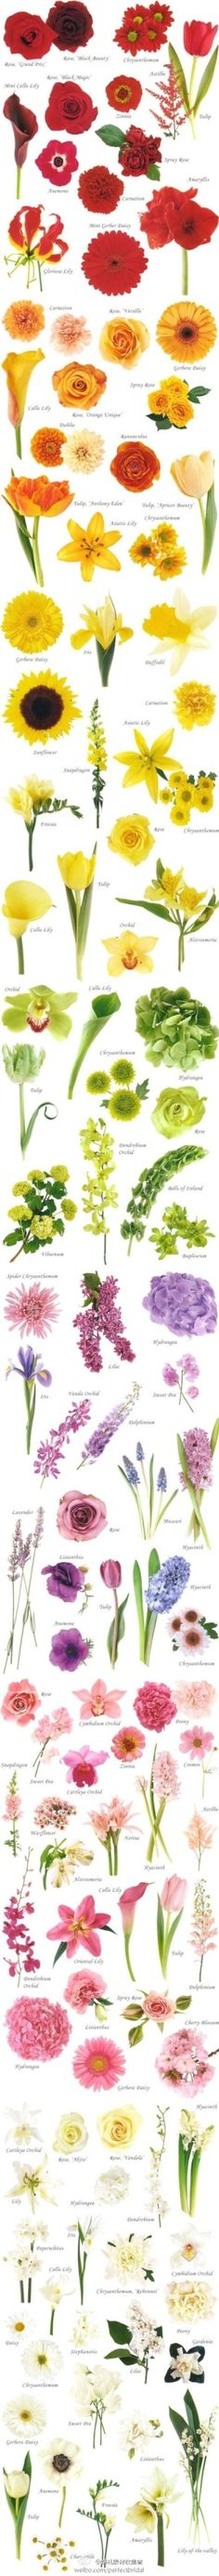 Did you ever wonder what flowers are available in your wedding colors? Have a look!